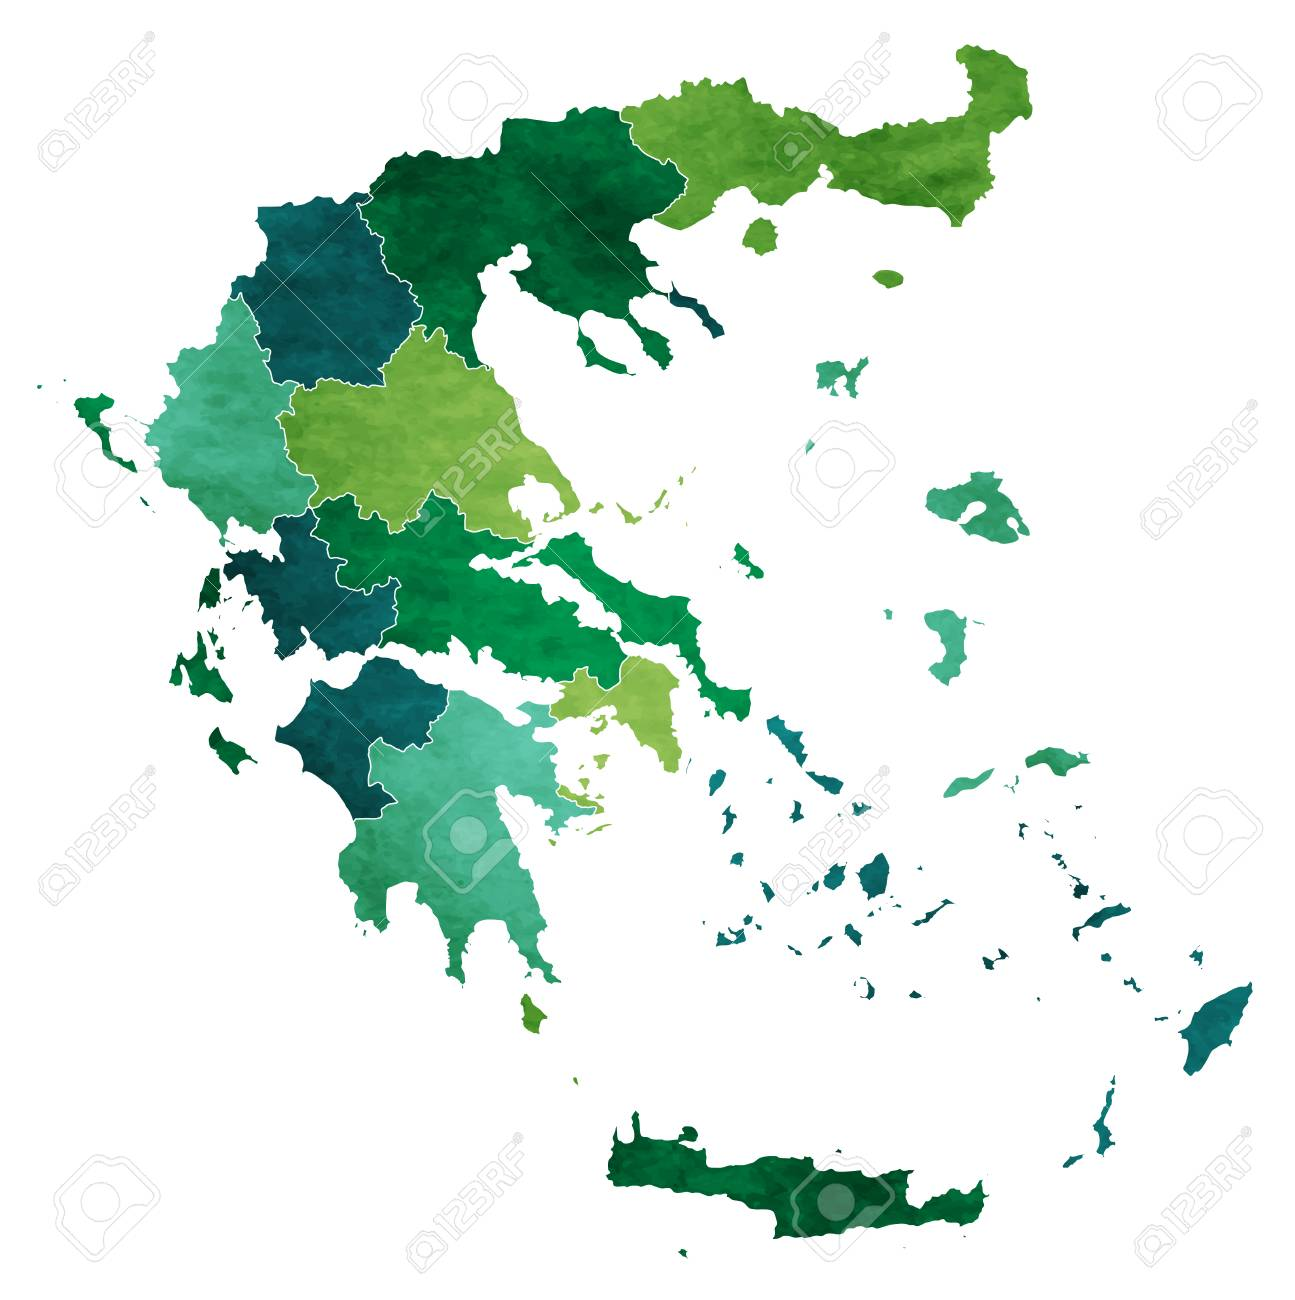 Greece world map country icon royalty free cliparts vectors and greece world map country icon stock vector 93843125 gumiabroncs Image collections